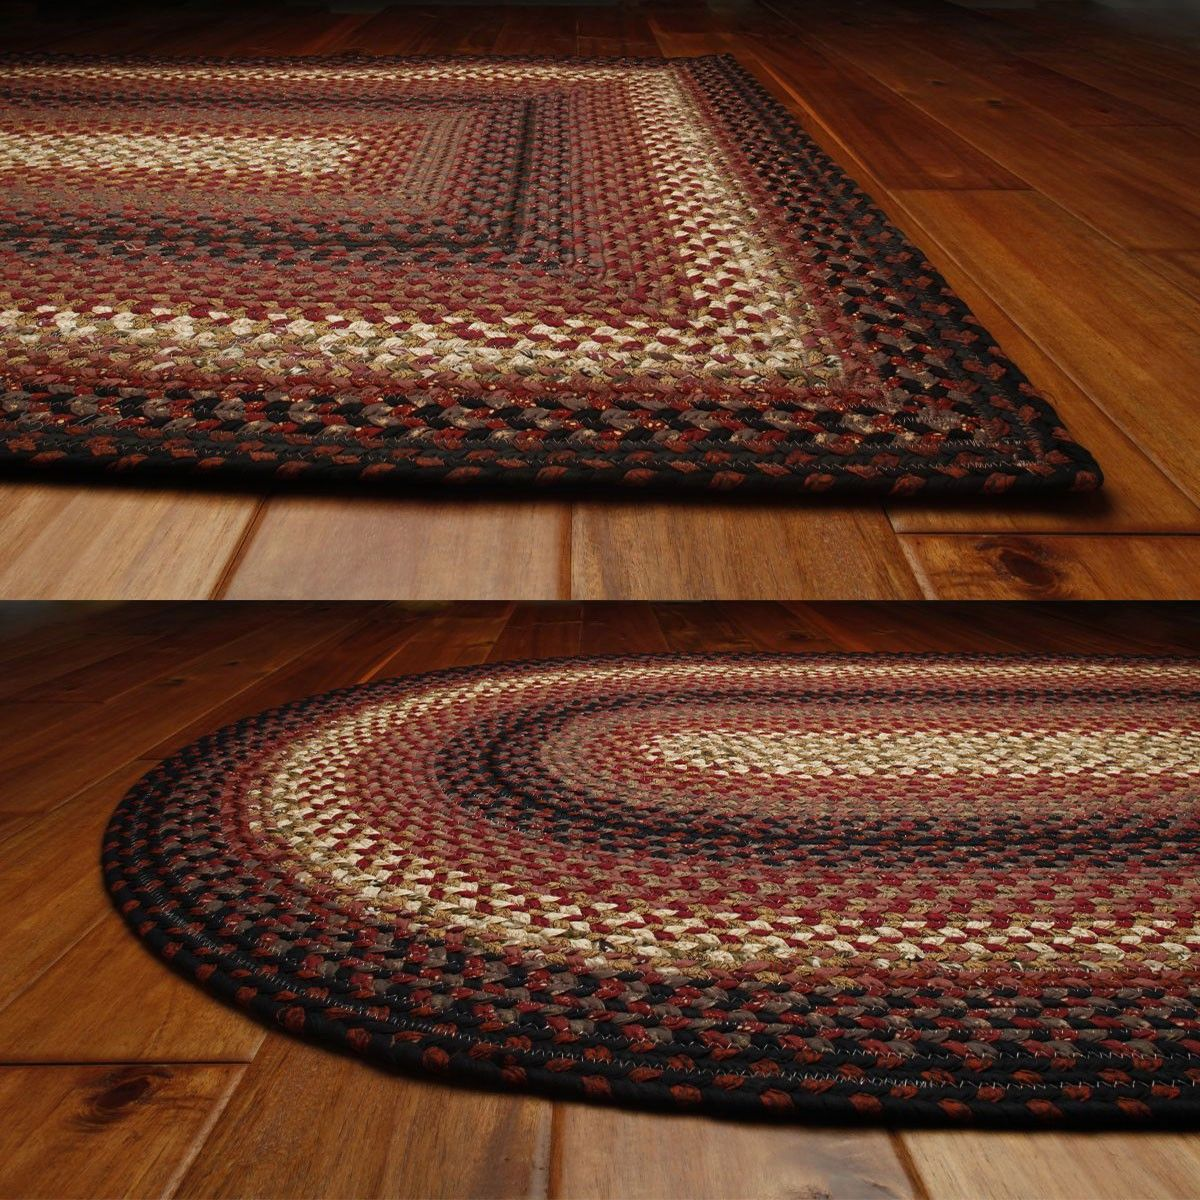 Plumberry Cotton Braided Rugs With Images Braided Jute Rug Oval Braided Rugs Braided Rugs